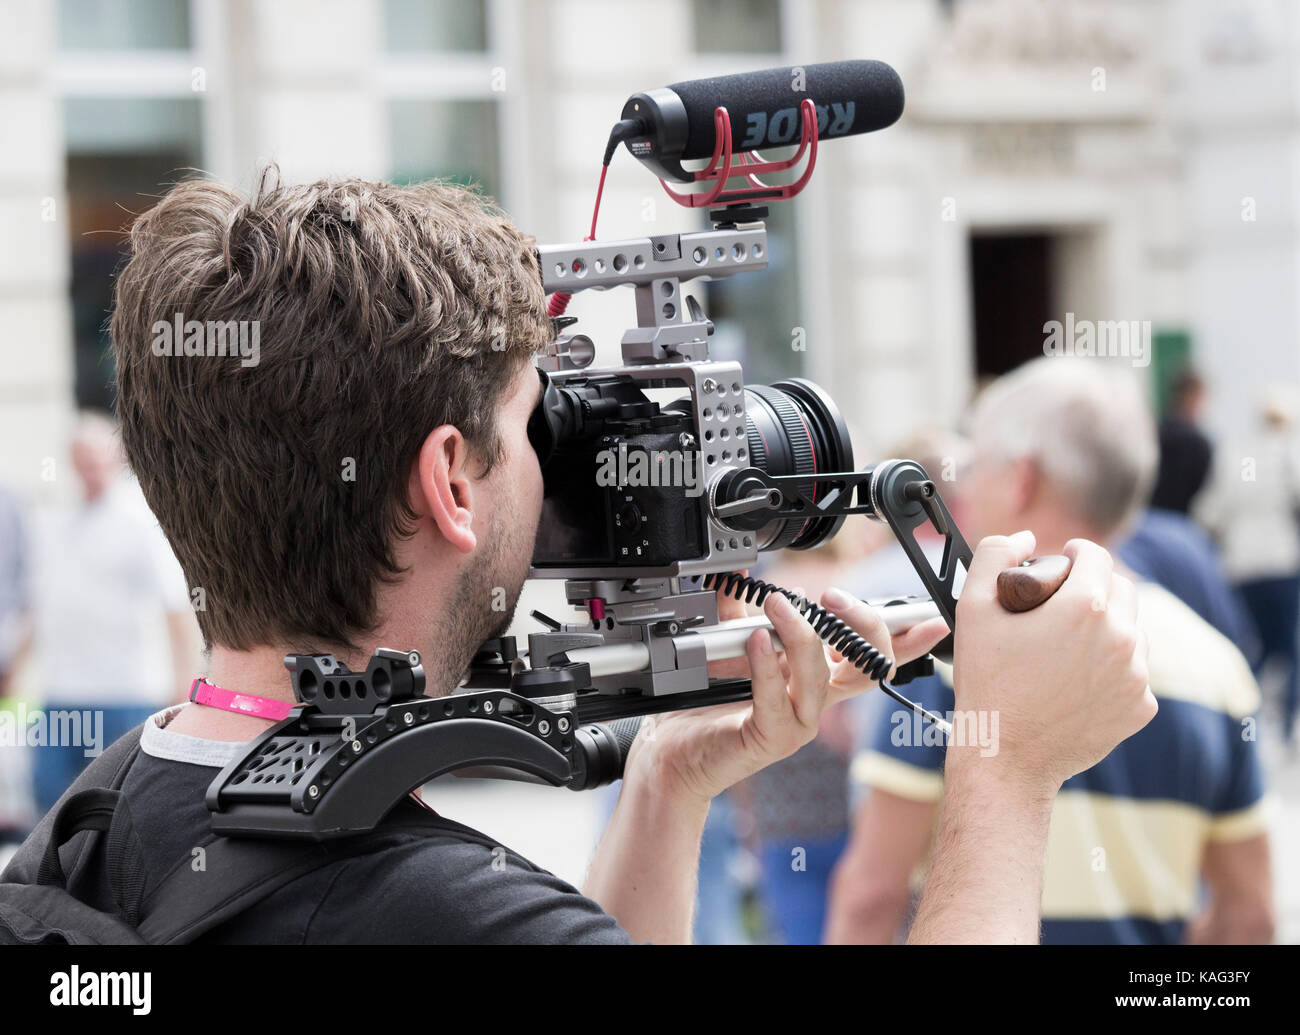 Man making video with DSLR camera supported on shoulder support - Stock Image